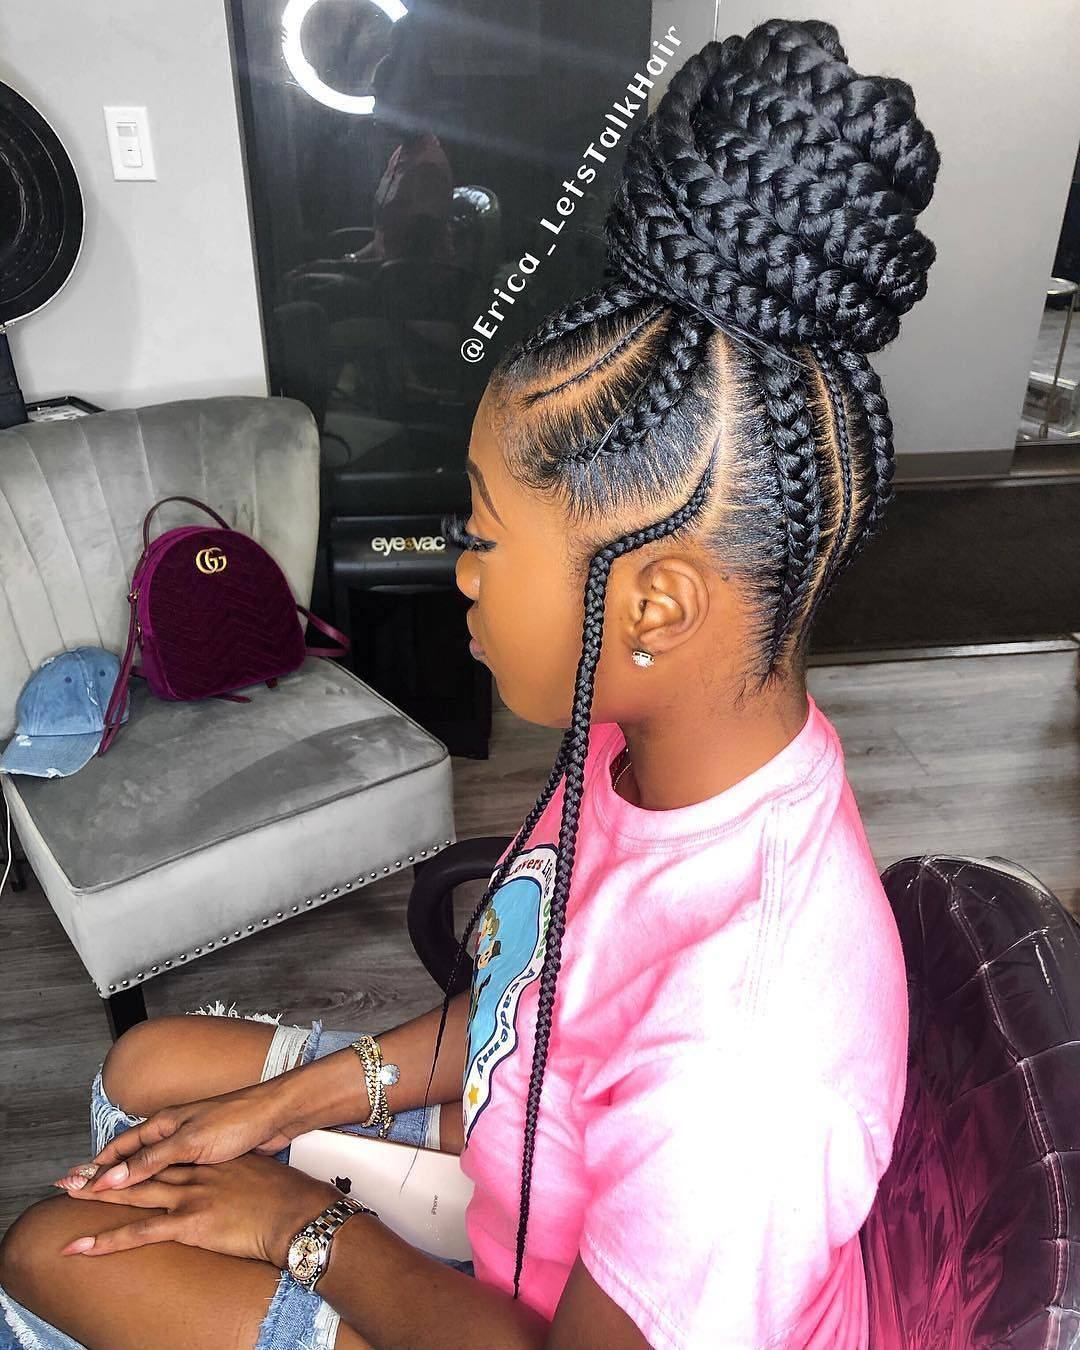 Natural Hair On Instagram Are You Feeling This Protective Style Erica Letstalkhair Braided Hairstyles African Braids Hairstyles Girls Hairstyles Braids